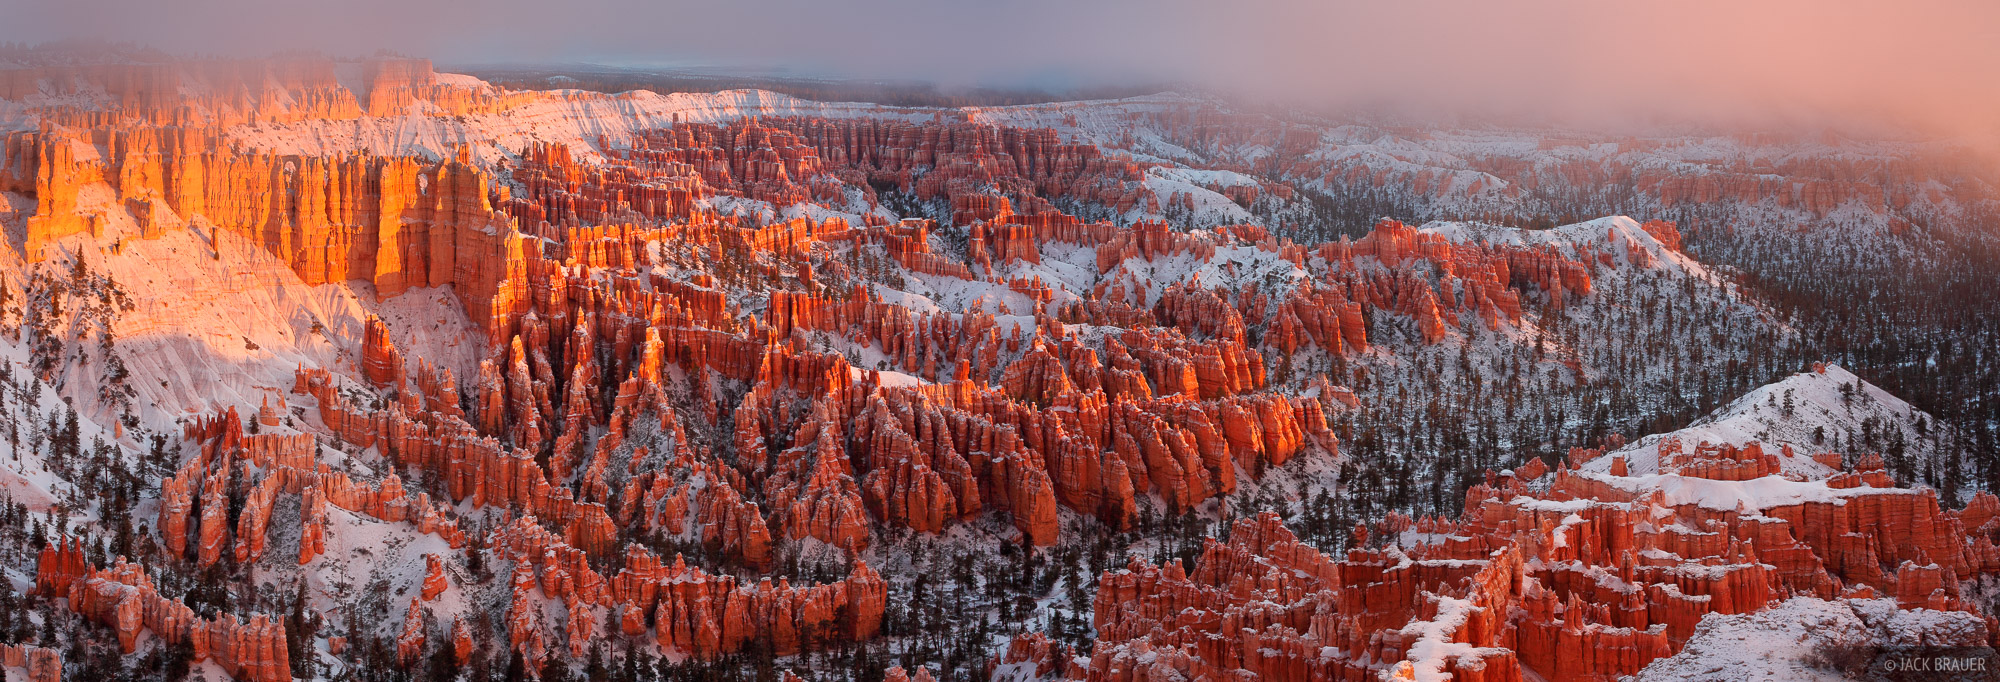 Bryce Canyon National Park, Bryce Point, snowy, sunrise, Utah, photo